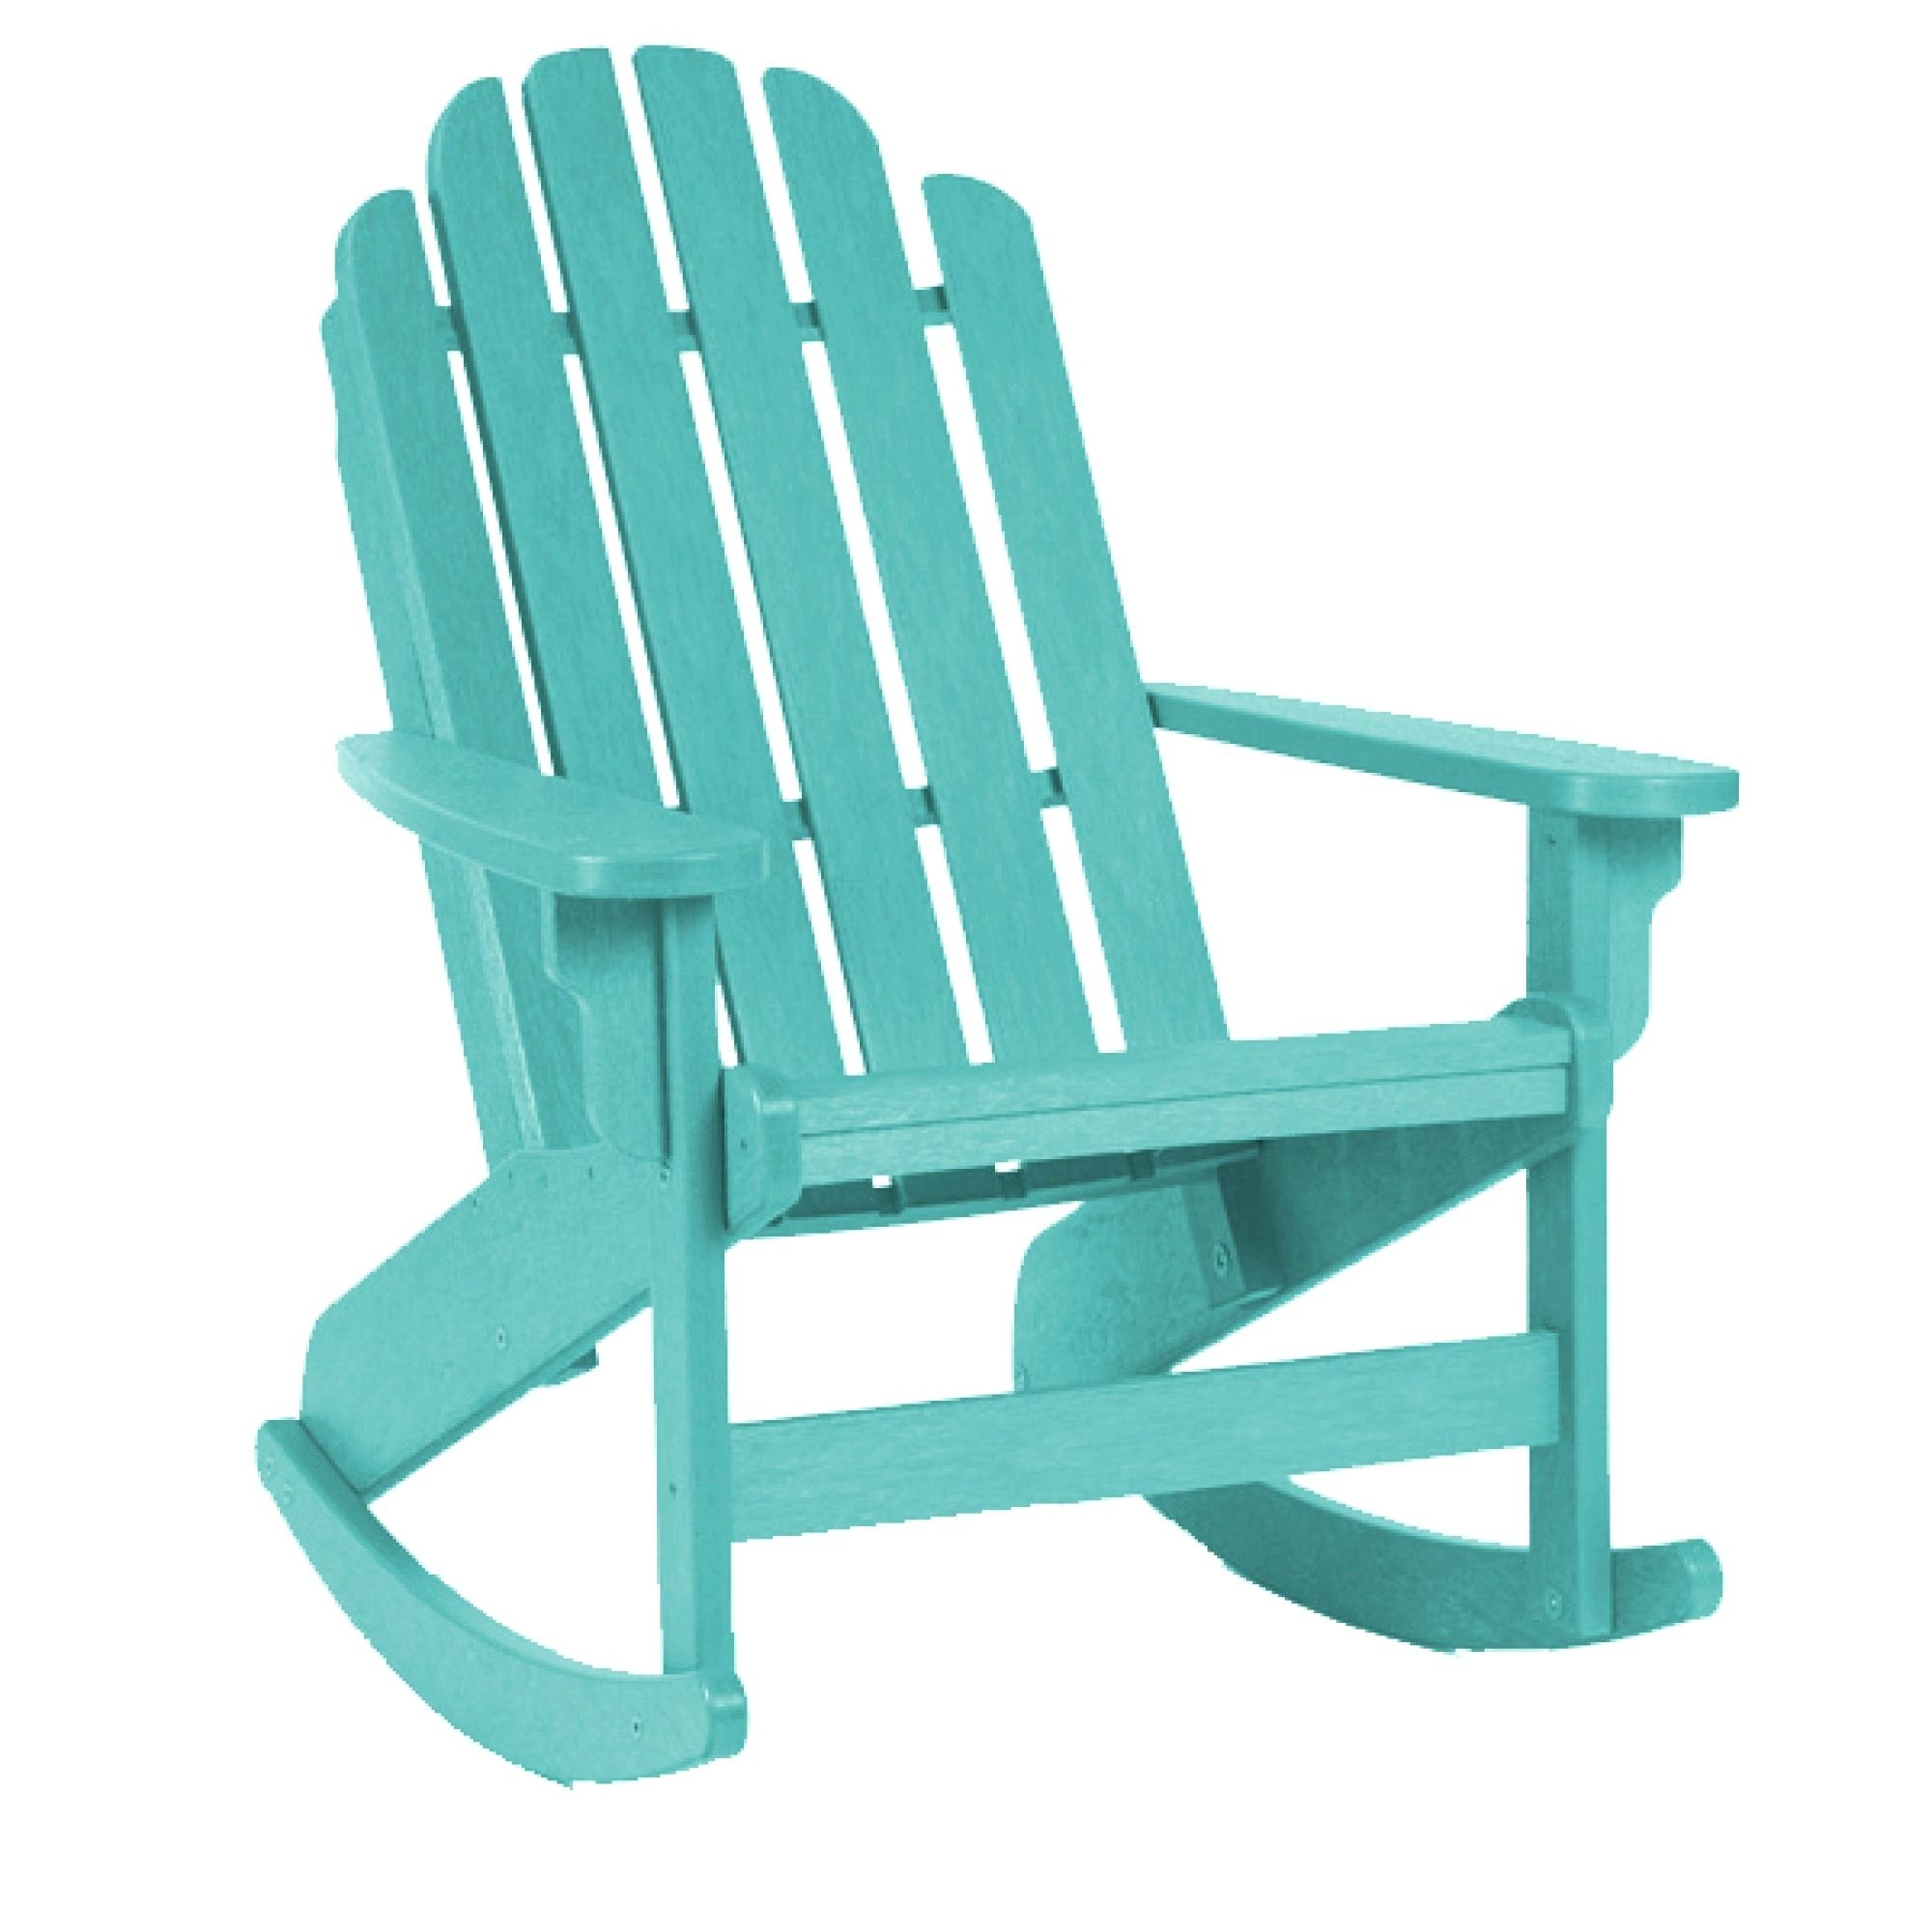 Lowes Rocking Chairs Chair Cushions Wood Hardware – Restorethelakes With Lowes Rocking Chairs (#6 of 15)